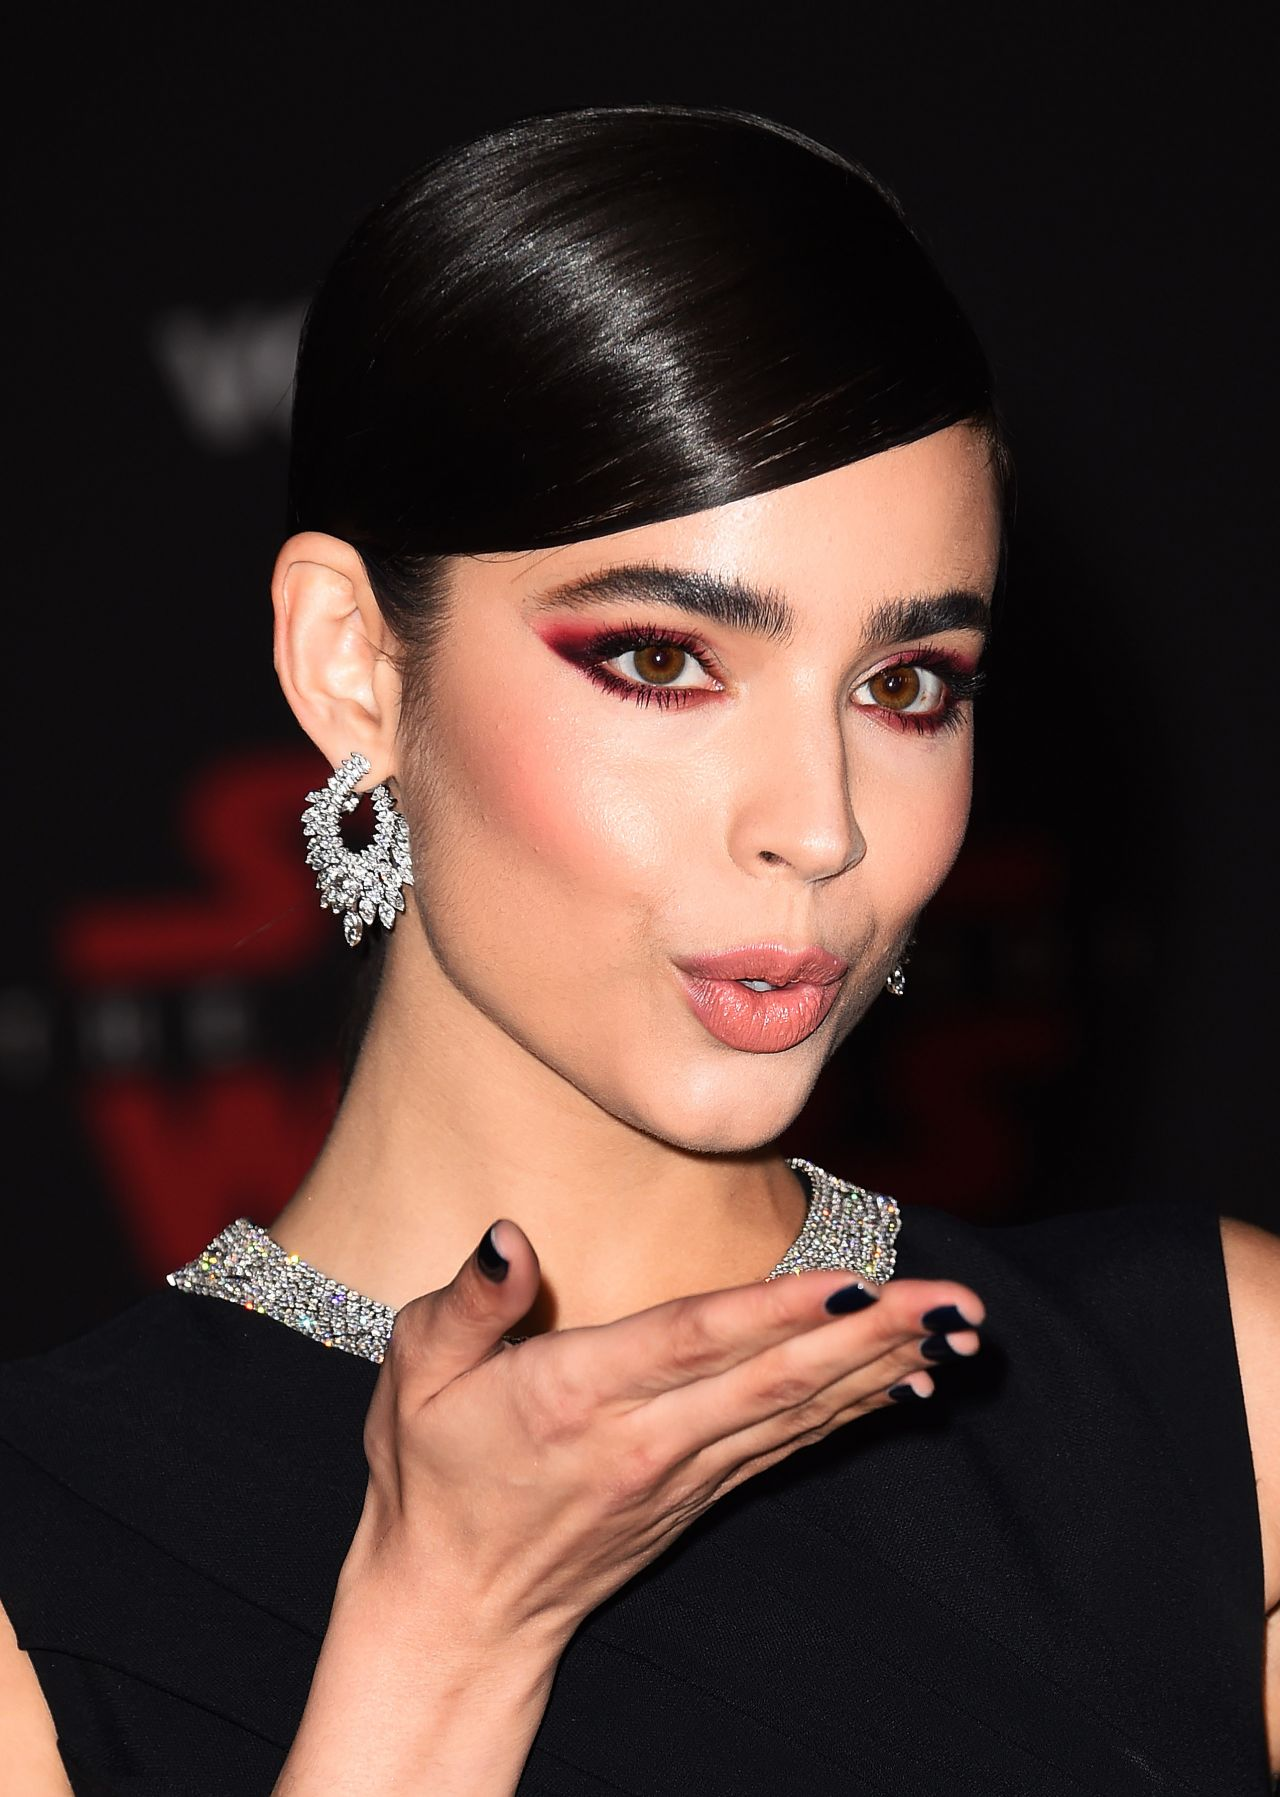 Sofia Carson Star Wars The Last Jedi Premiere In La